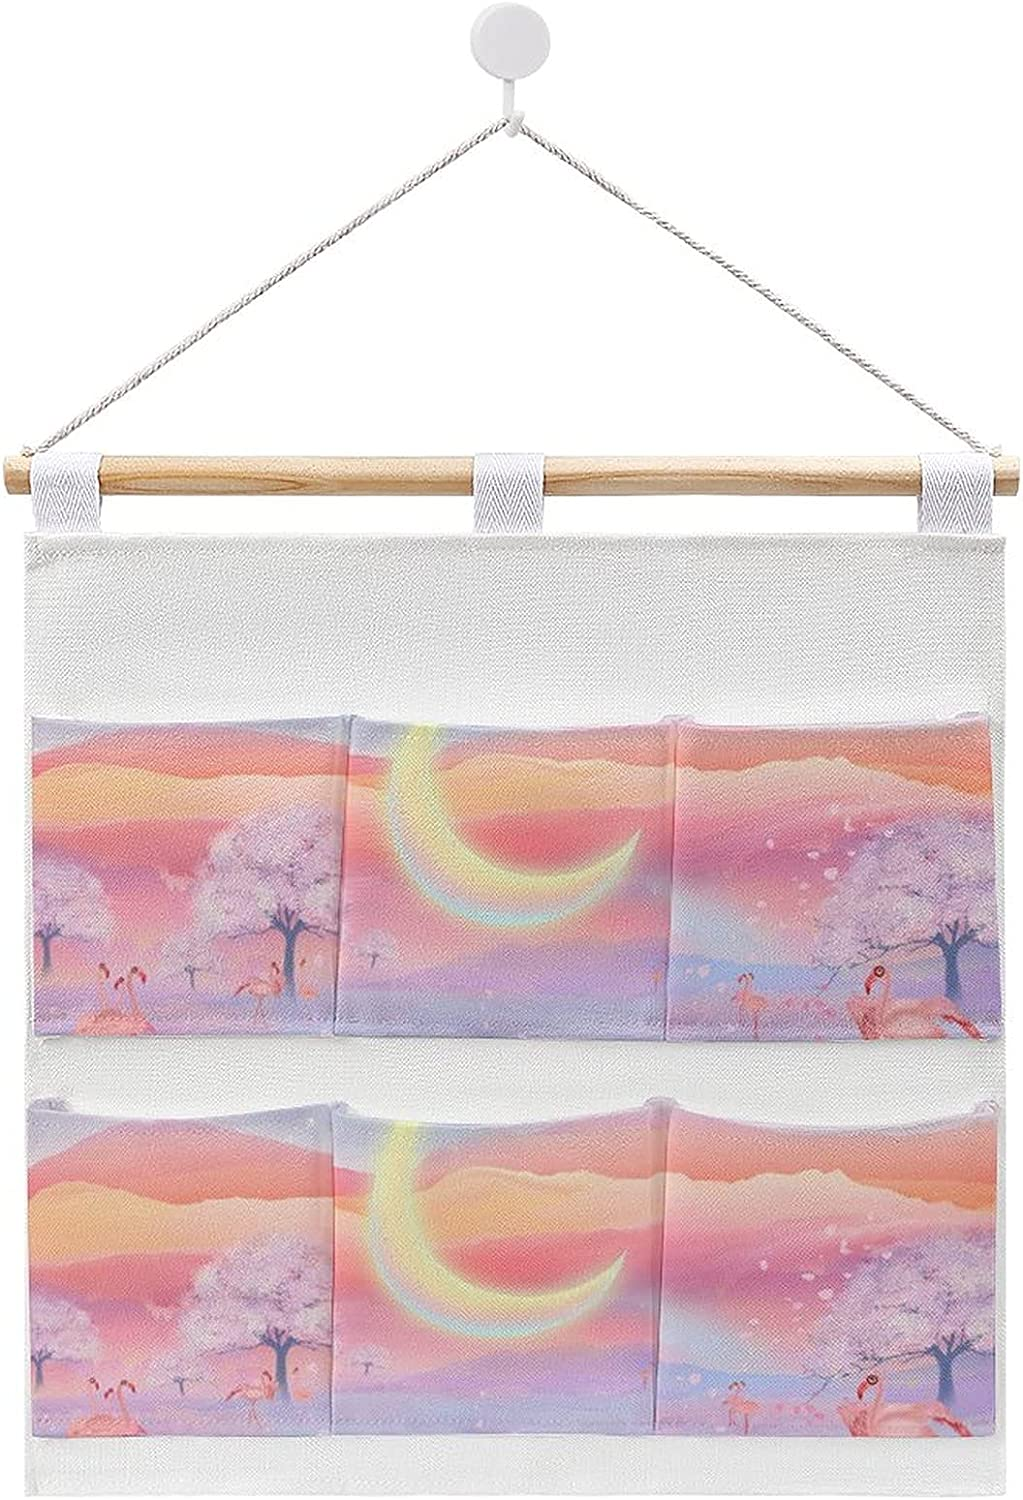 Beautiful Snow Scenery Hanging Max 62% OFF cotton and bag Challenge the lowest price stab linen storage